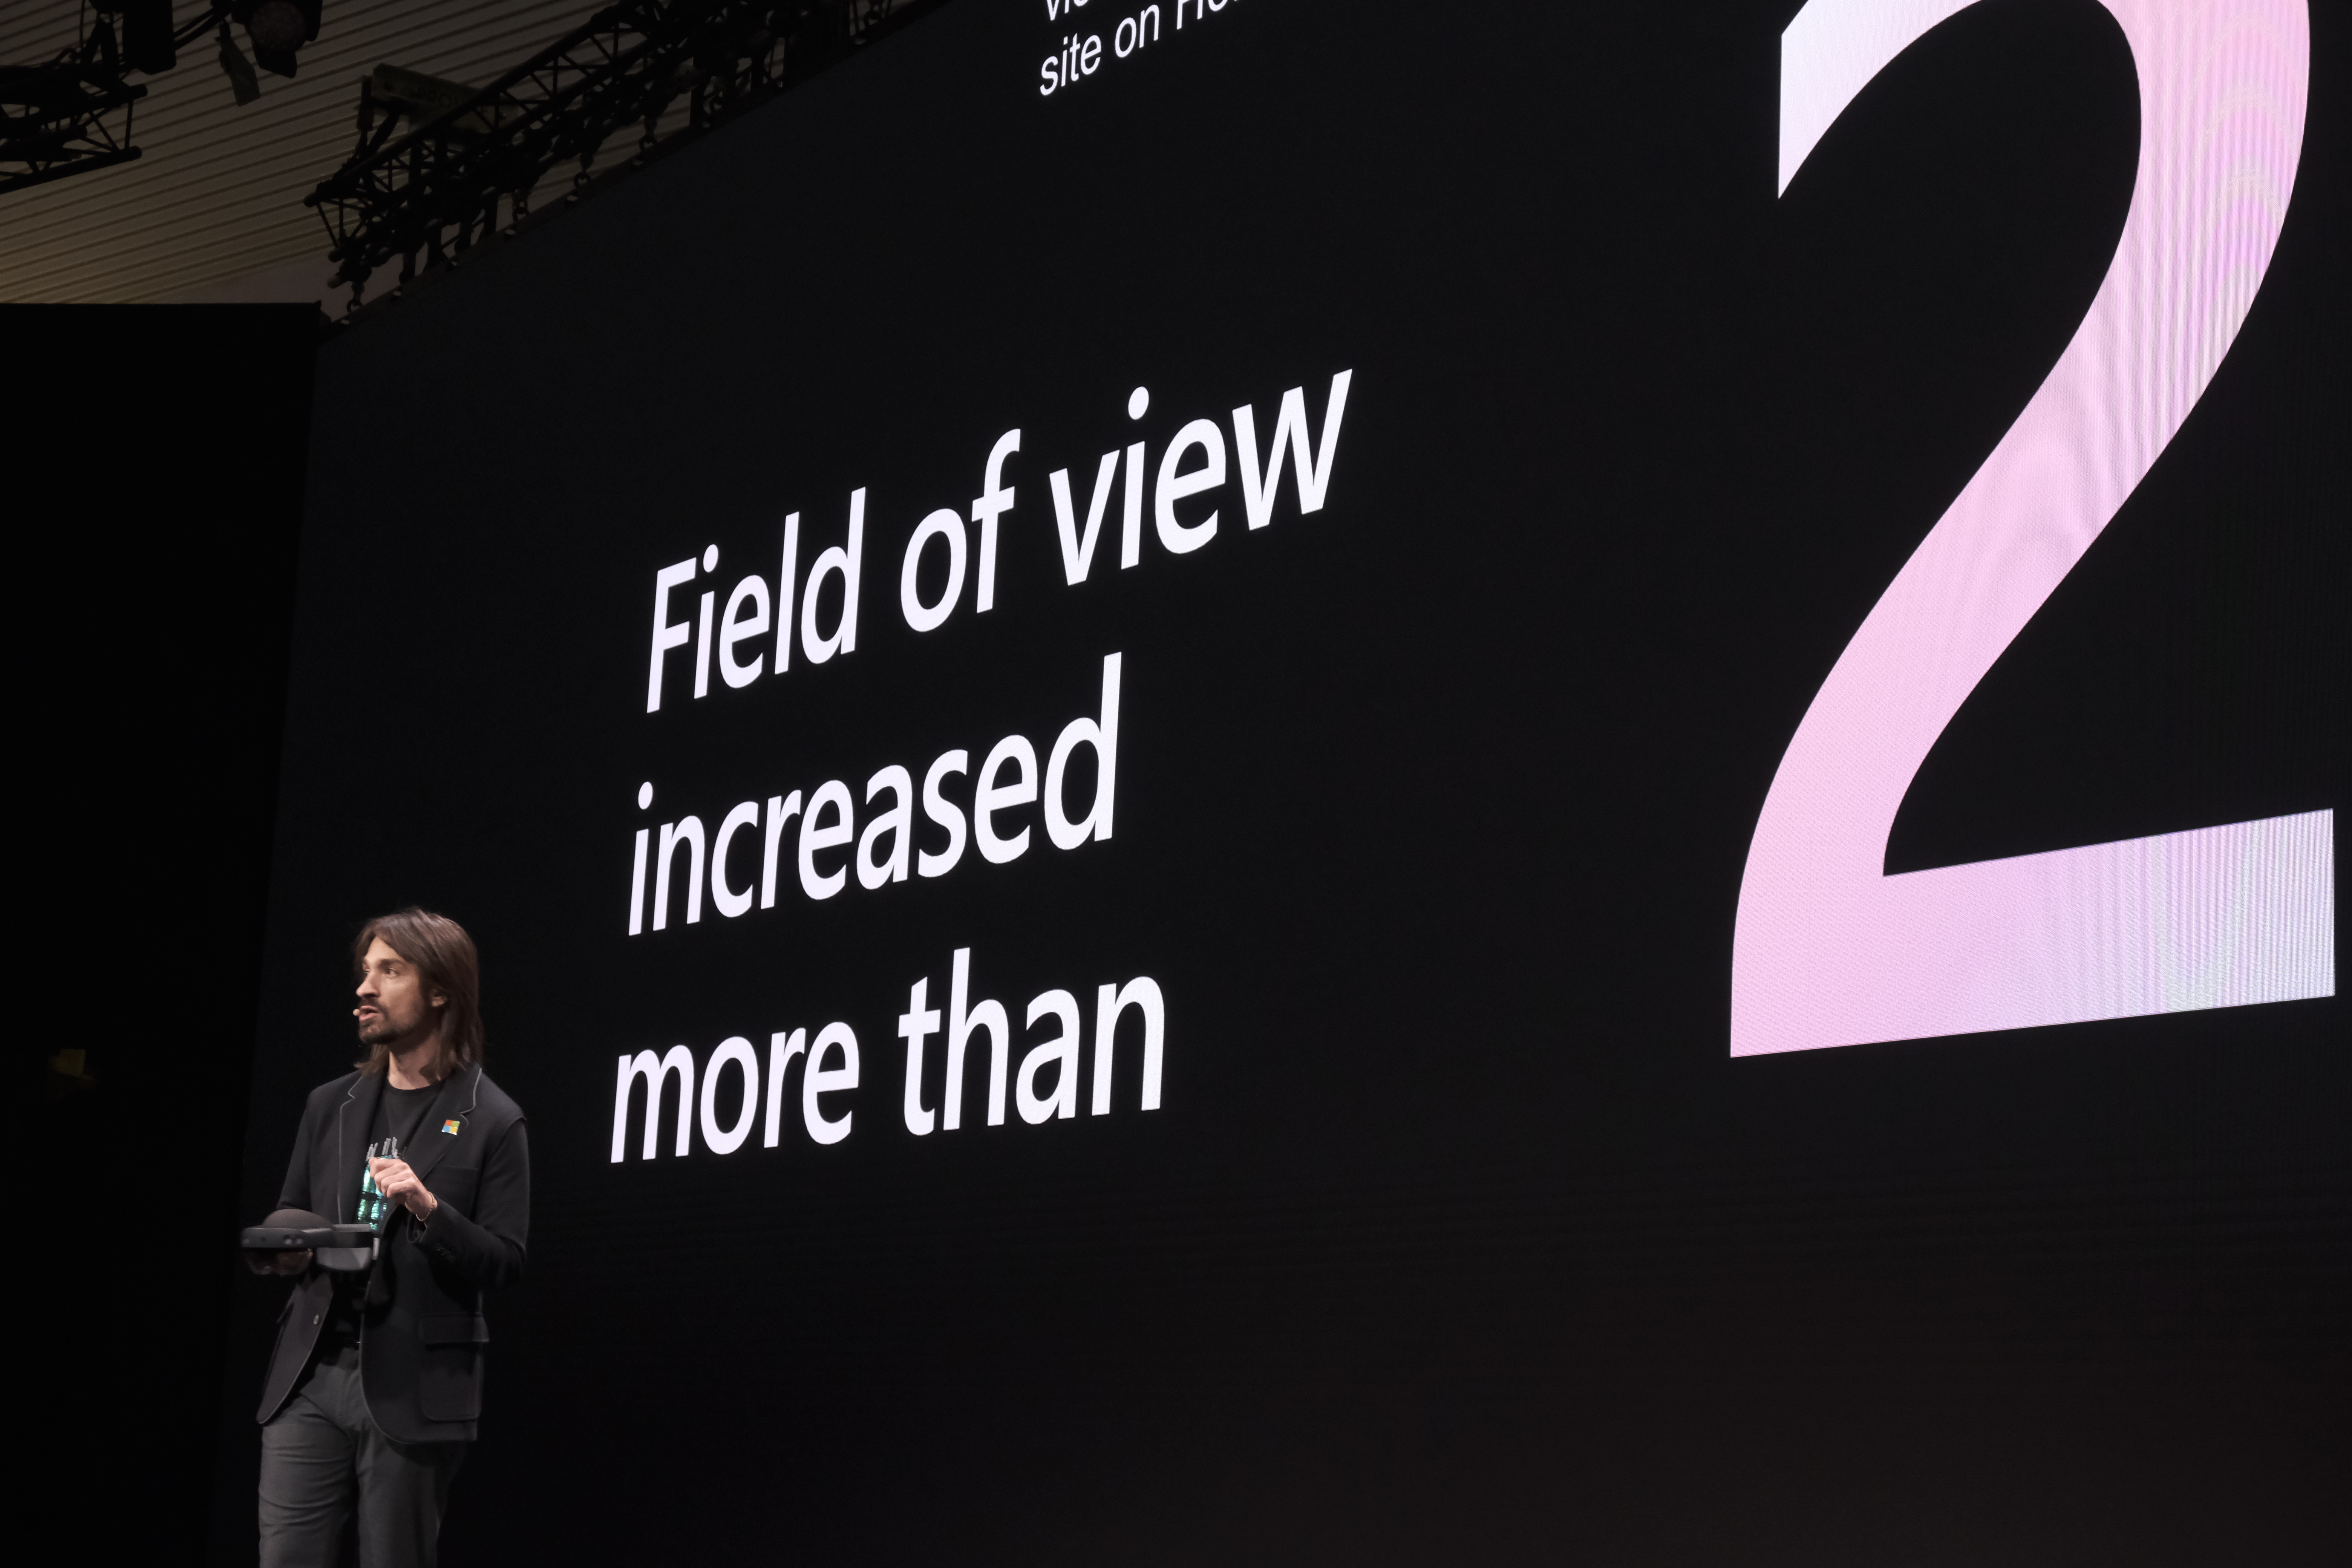 Say hello to Microsoft's new $3,500 HoloLens with twice the field of view Say hello to Microsoft's new $3,500 HoloLens with twice the field of view Microsoft MWC0071HOLOLENS 2